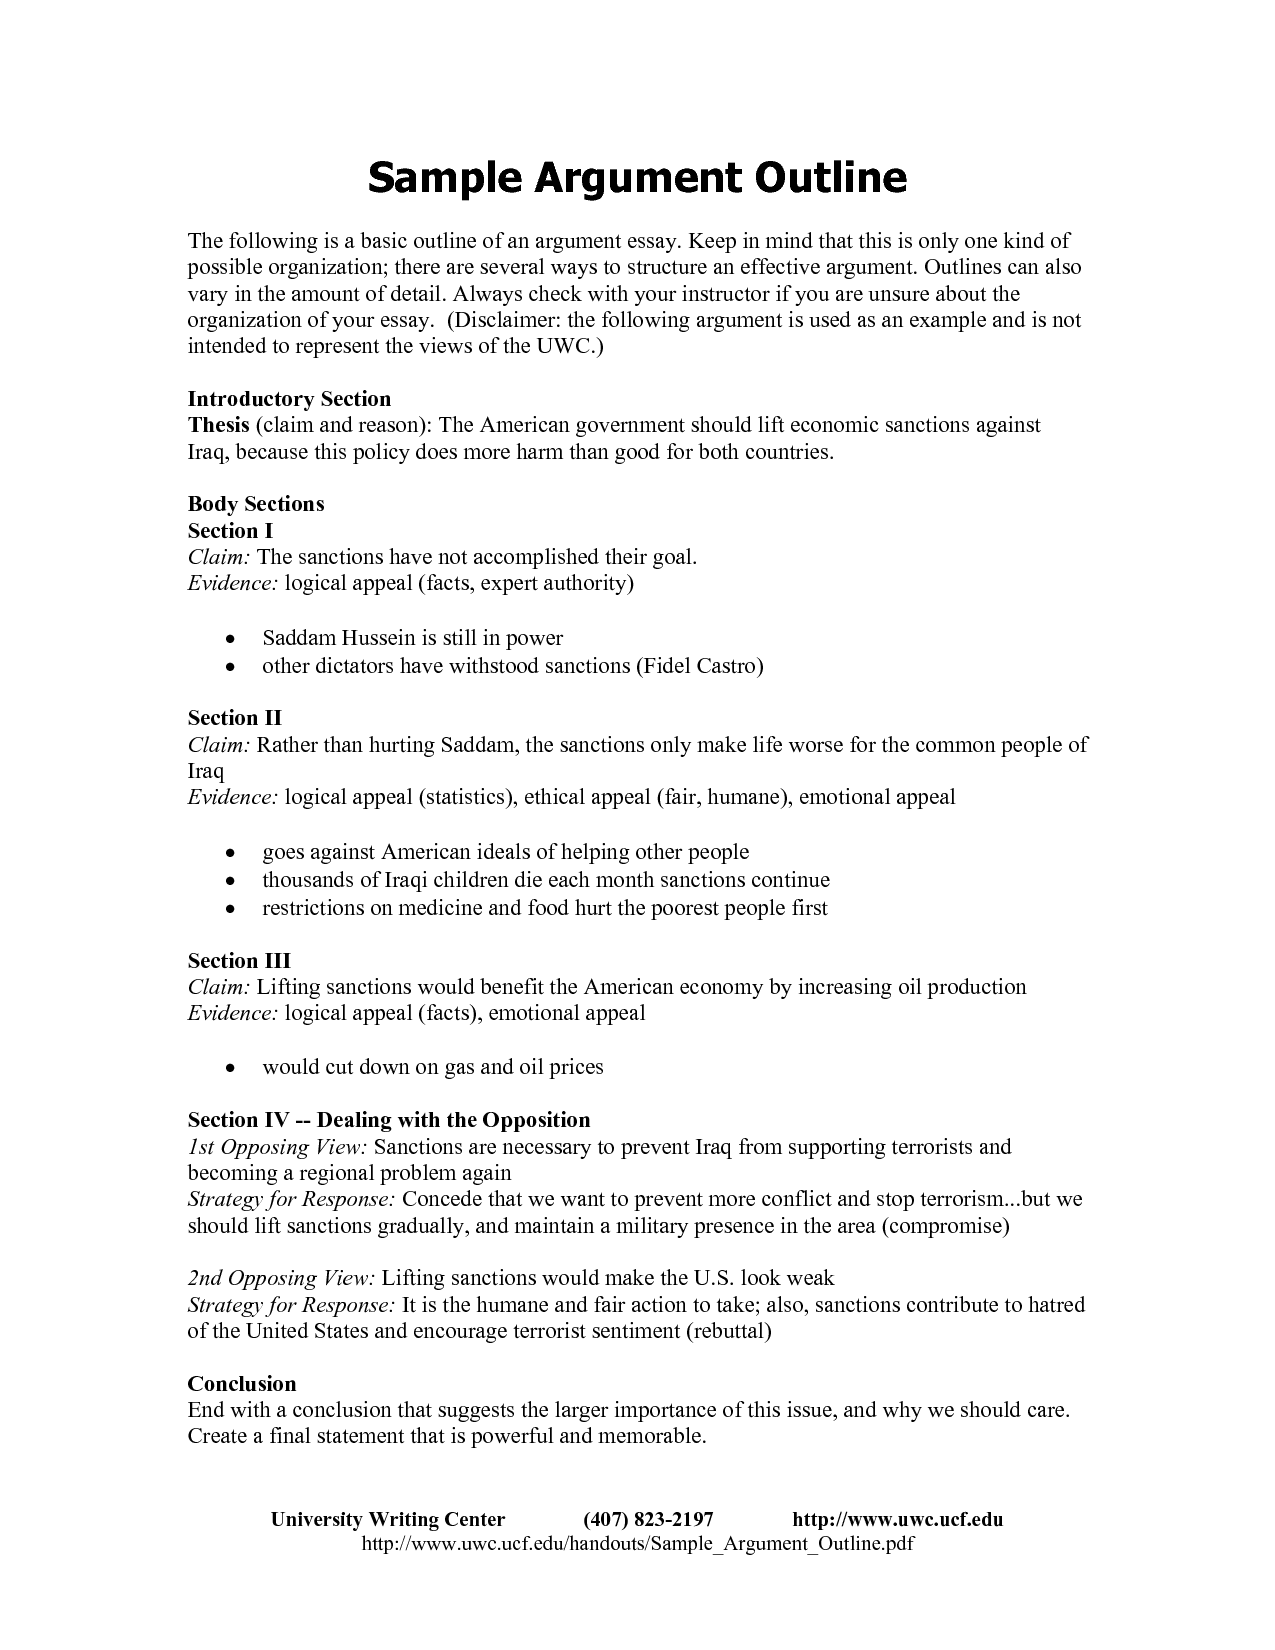 Persuasive essay on the homeless popular cv editing services gb